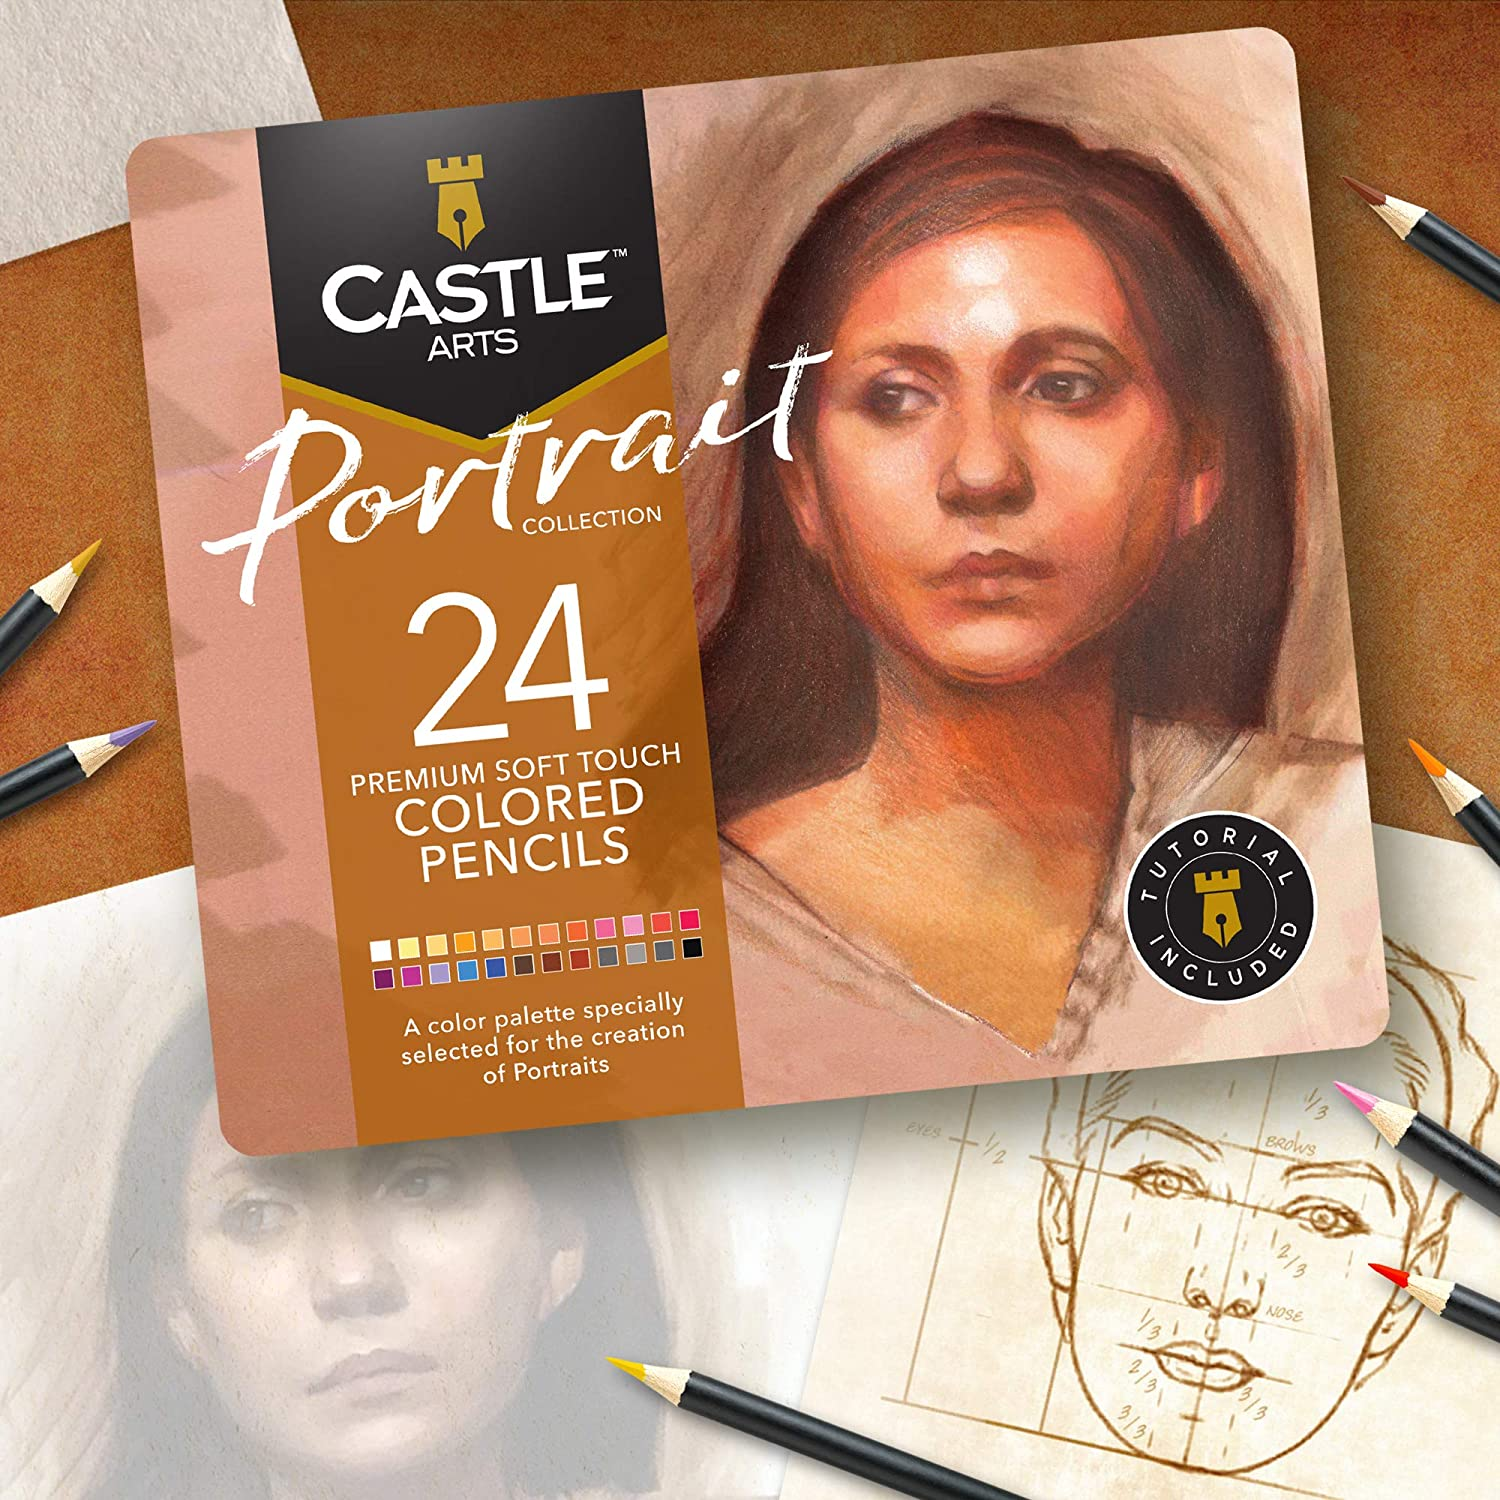 Featuring Castle Arts Themed 24 Colored Pencil Set in Tin Box smooth colored cores perfect /'Van Gogh/' inspired colors superior blending /& layering performance for great results